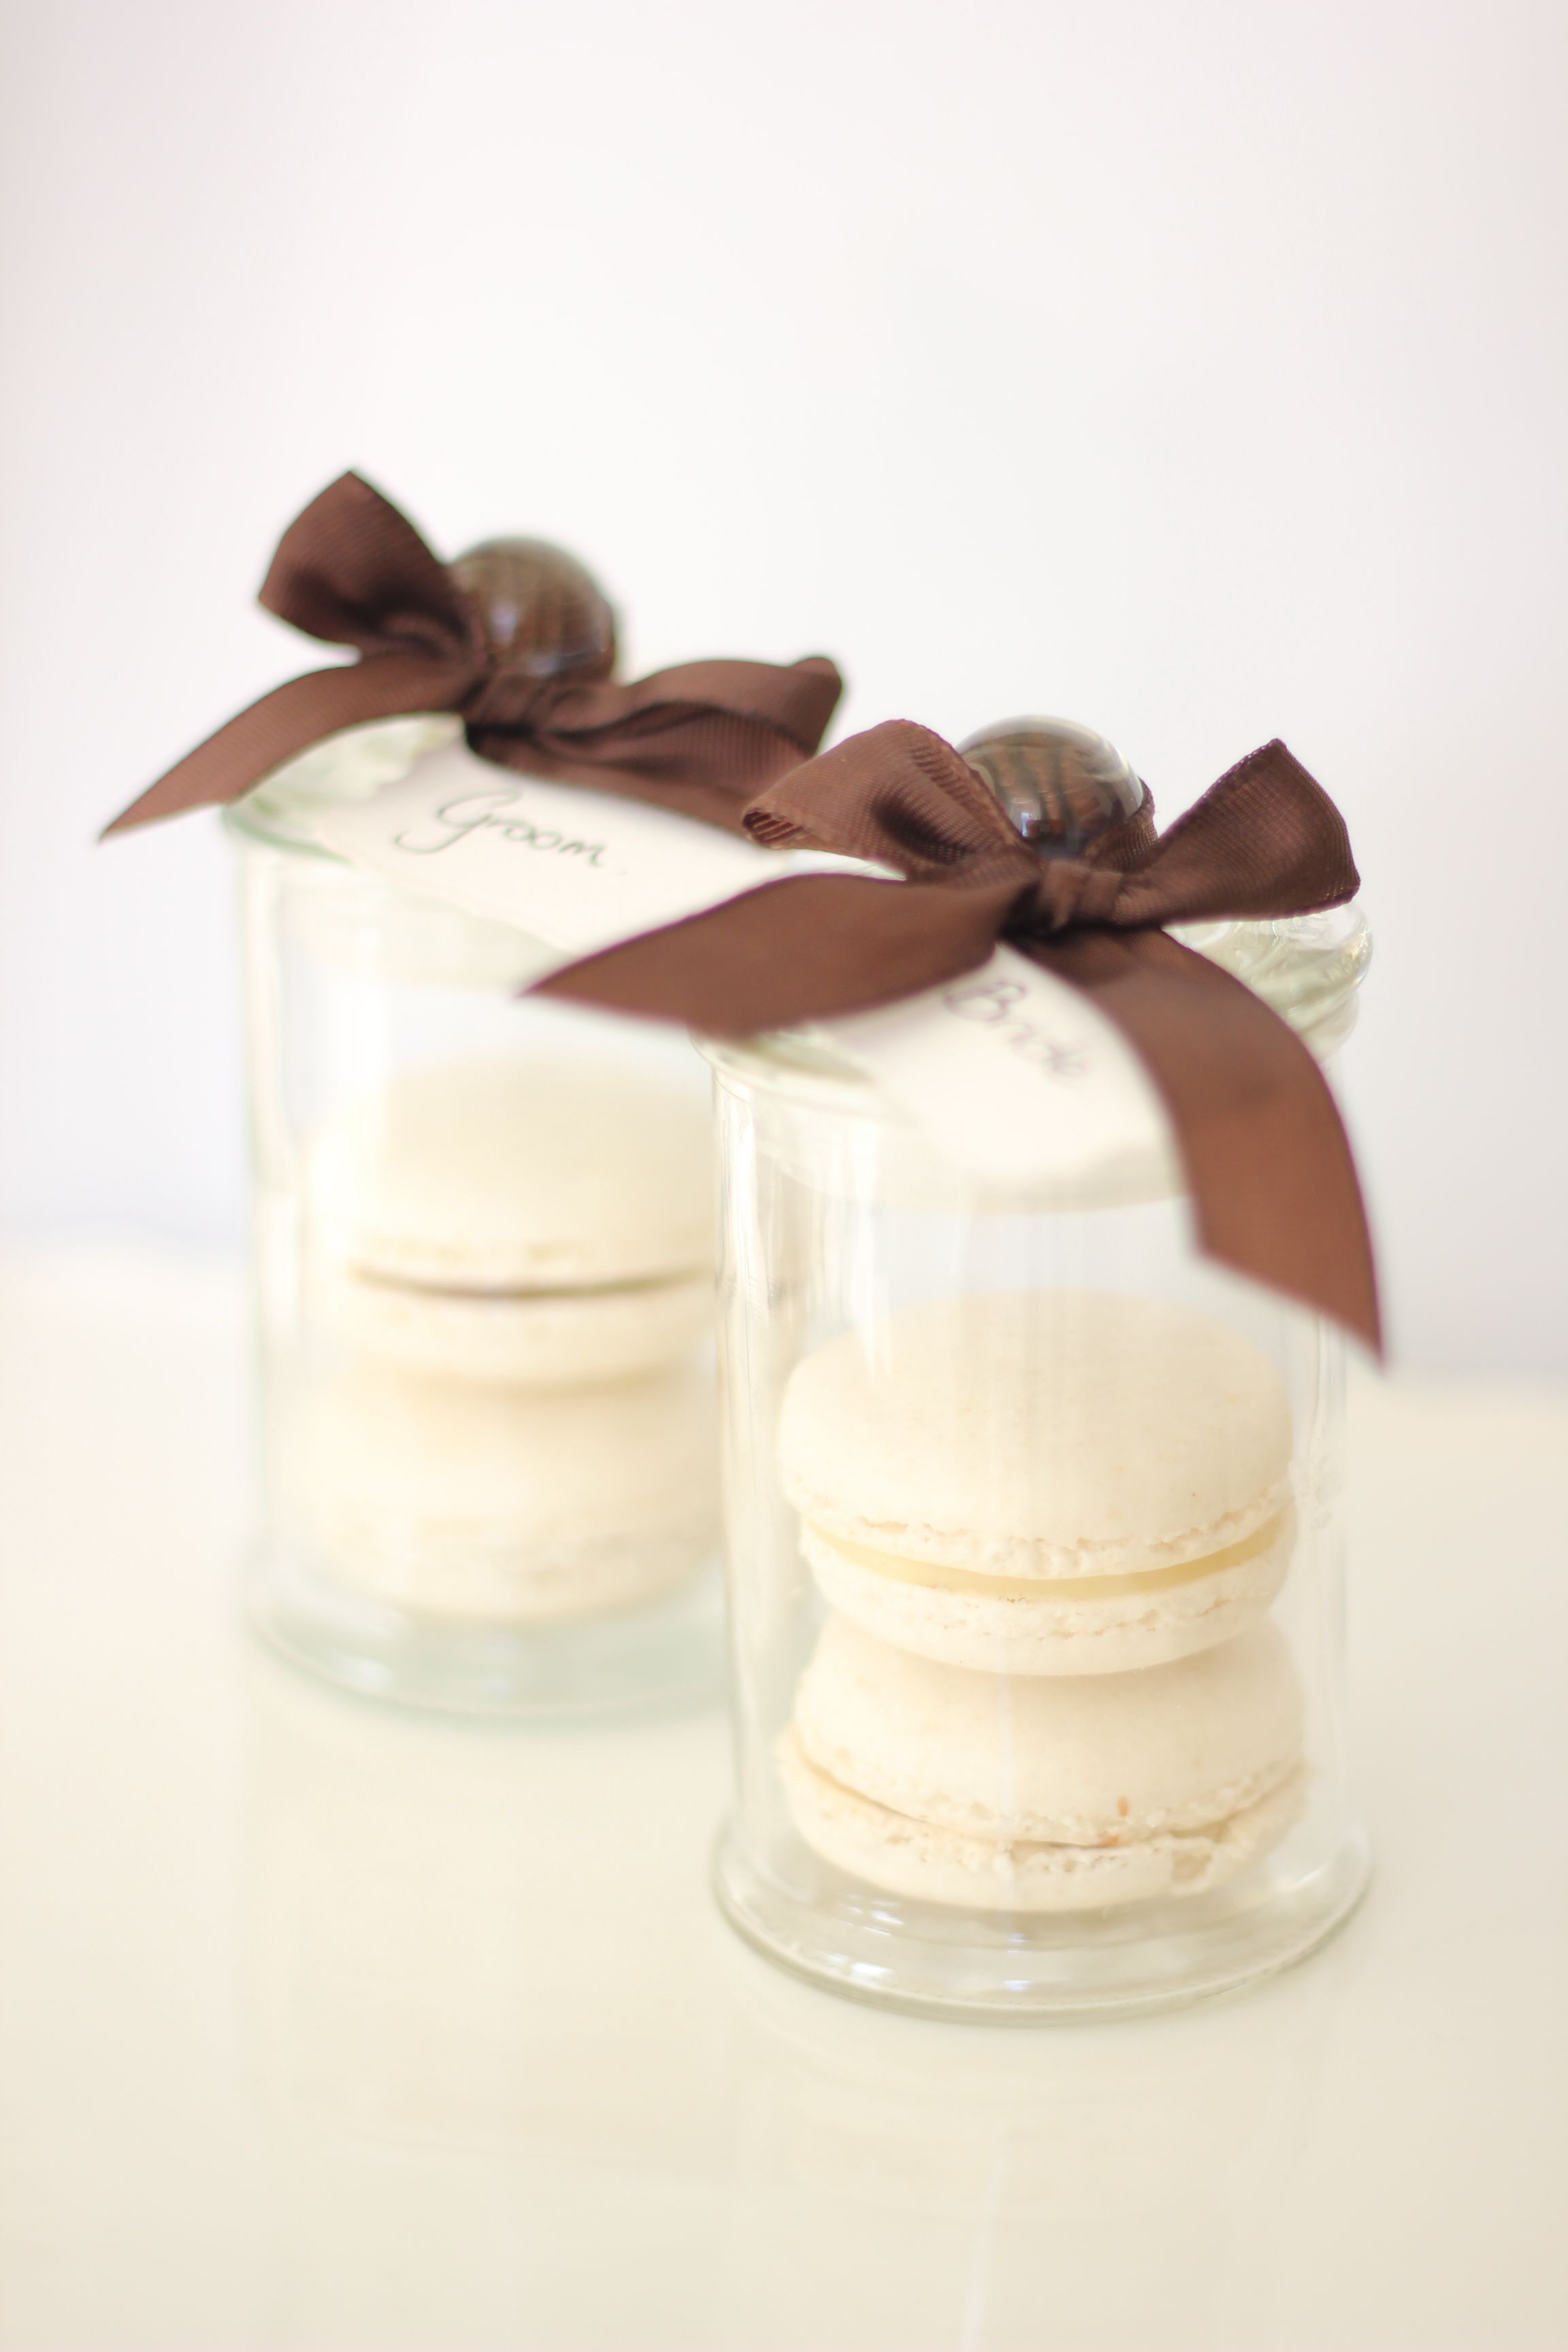 Coco and Bean bomboniere….cute wedding idea | Wedding style ...